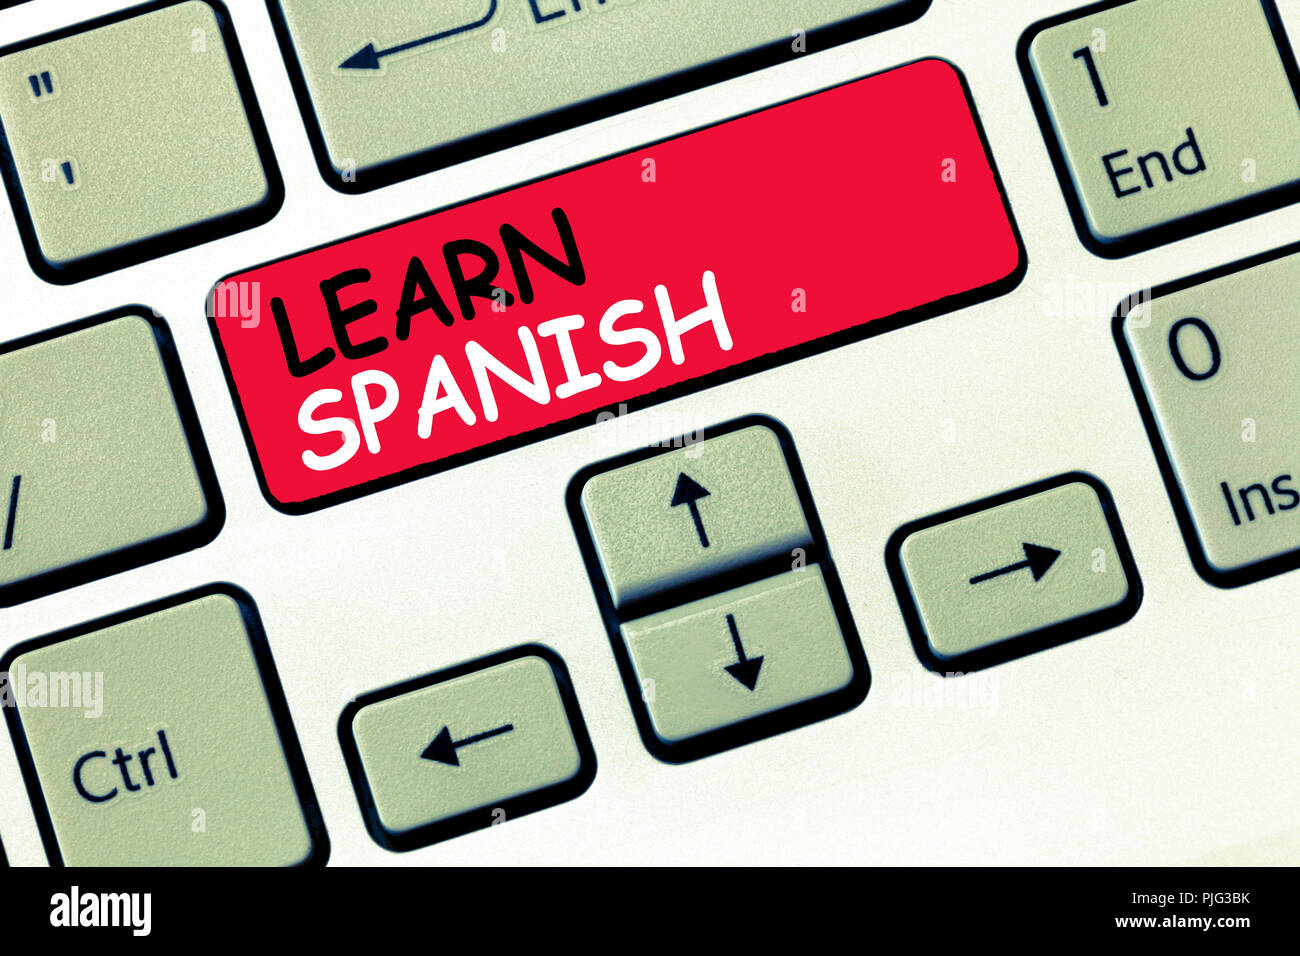 How to Learn Spanish Free : English to Spanish Translation ...